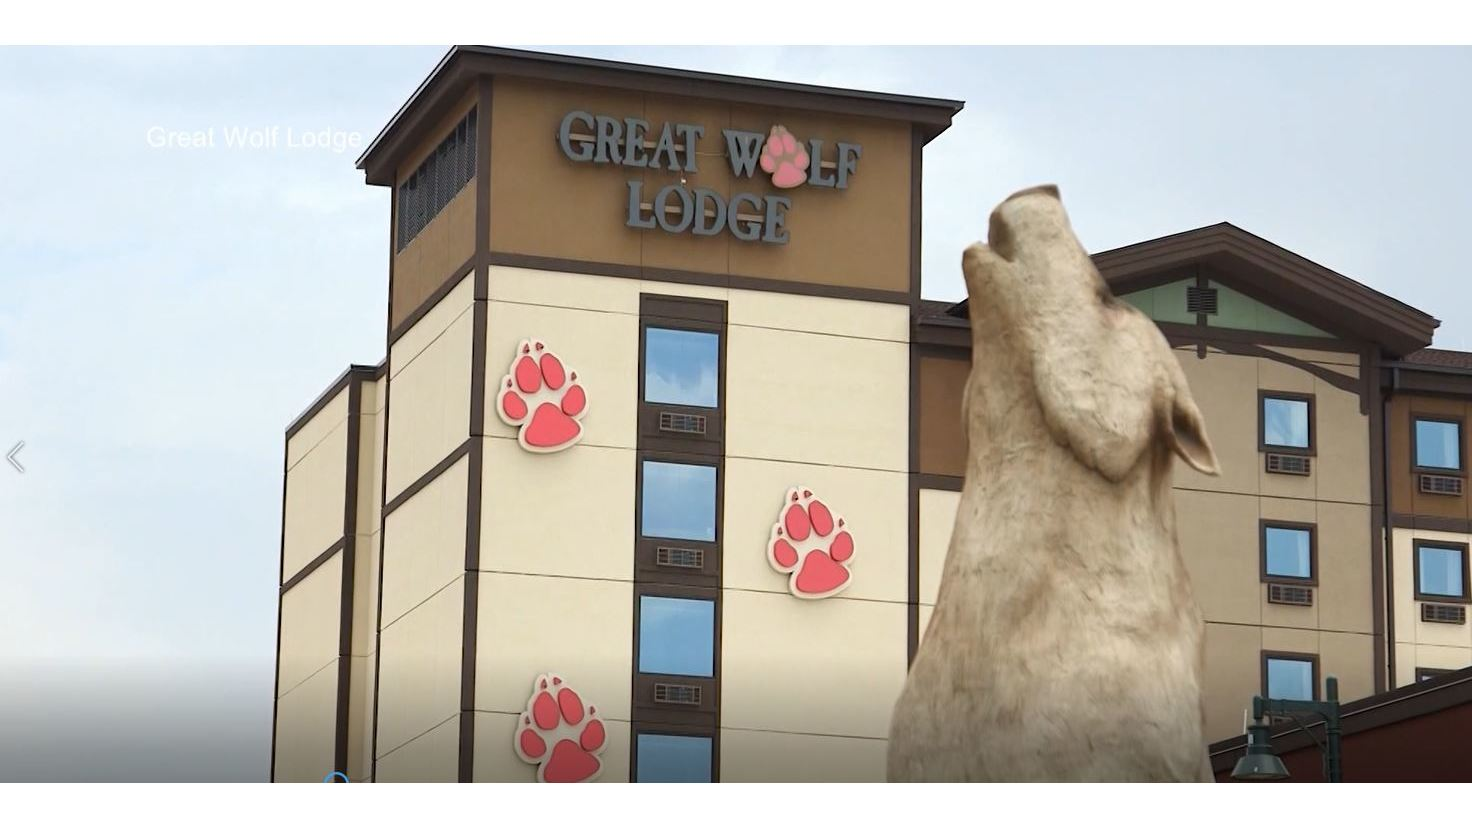 The City moves forward with Great Wolf Lodge project